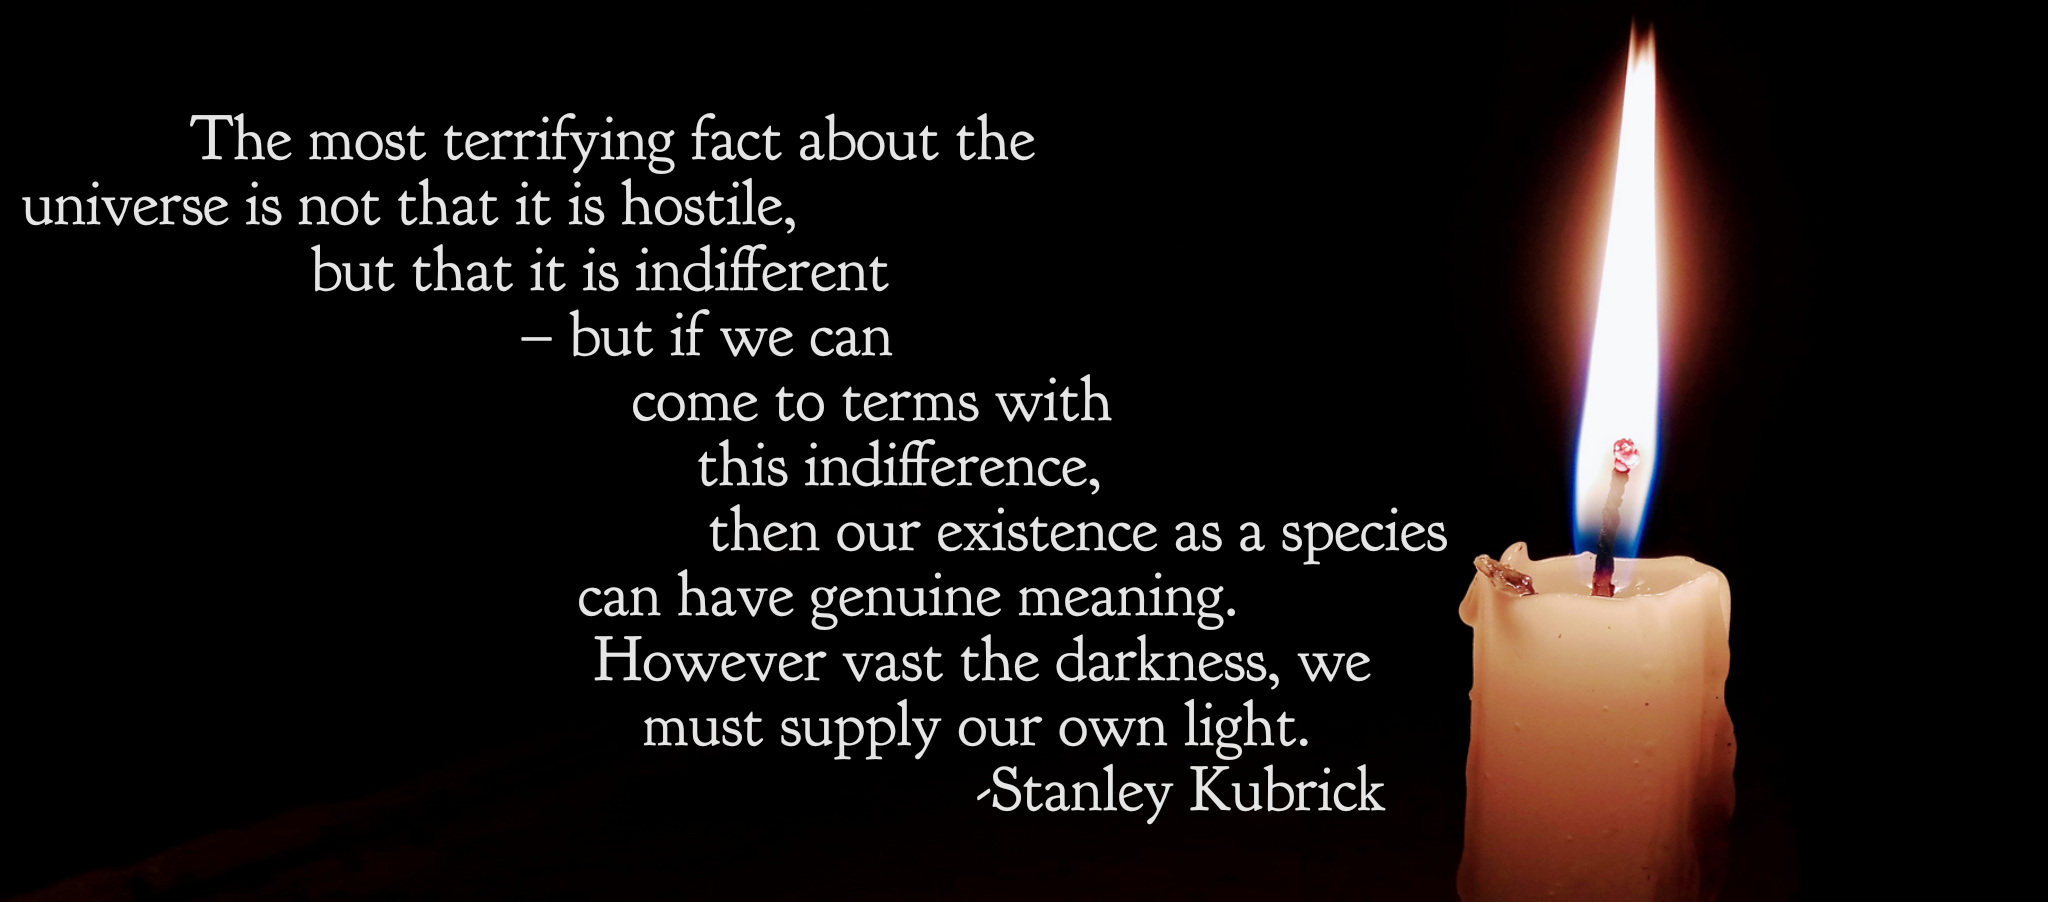 """The most terrifying fact about the universe is not that it is hostile, but that it is indifferent…"" -Stanley Kubrick [2048×902][OC]"